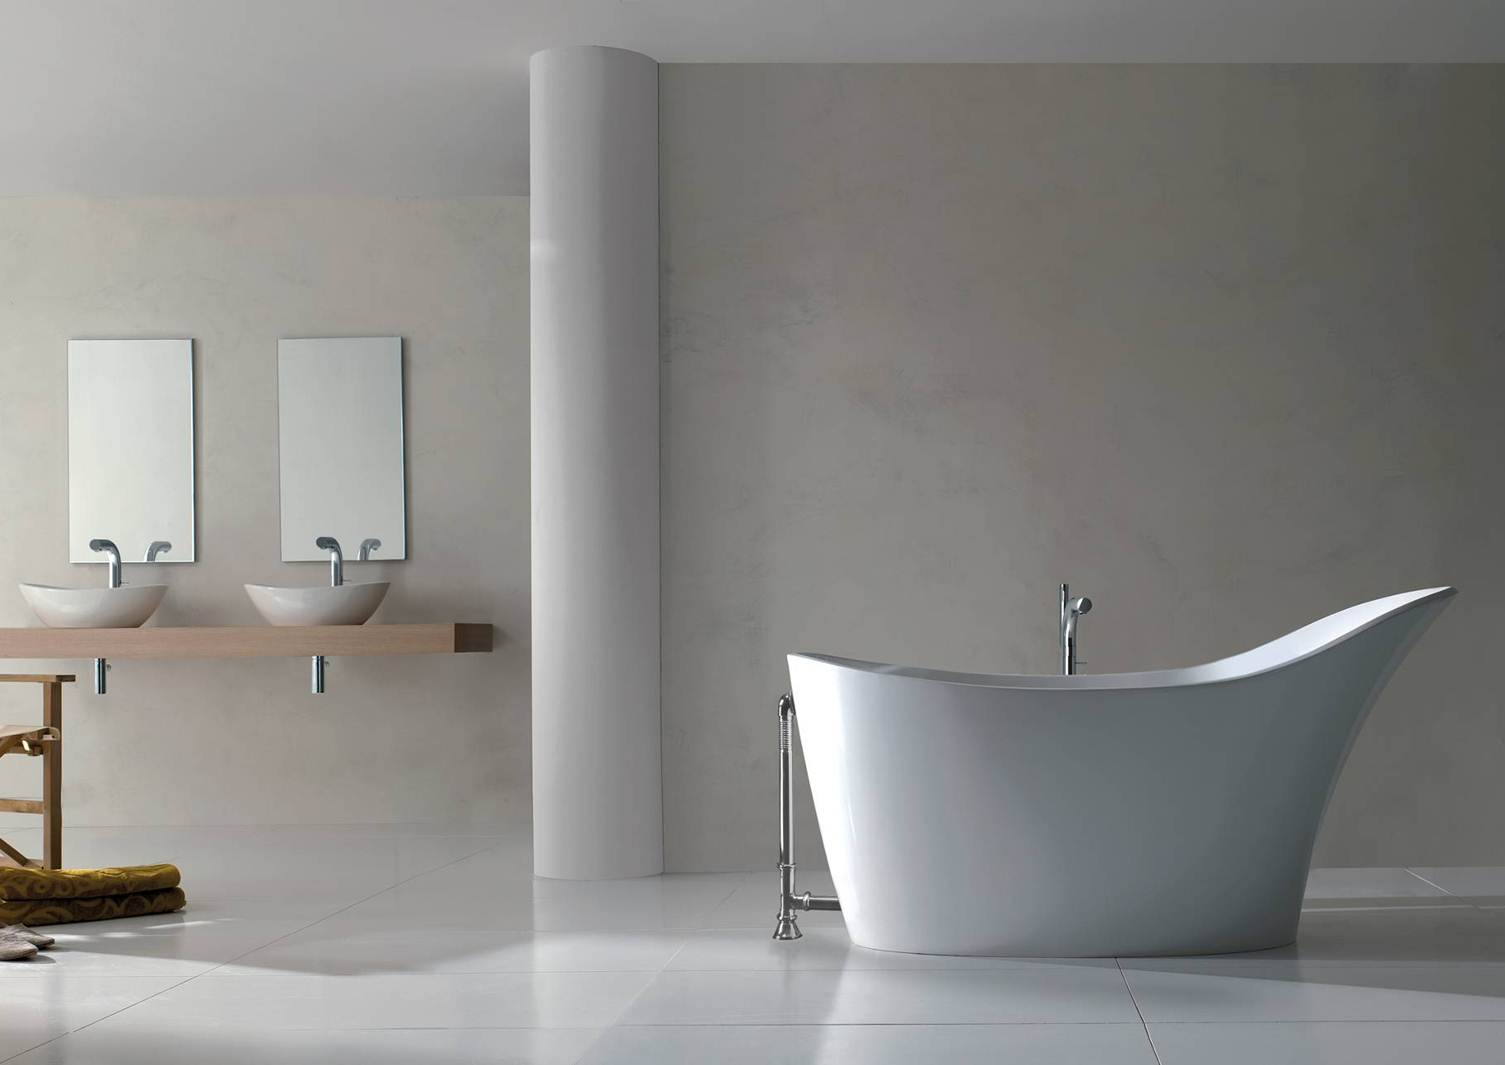 Remodel Your Private Bathroom With Luxurious Victoria And Albert Tubs HomesFeed